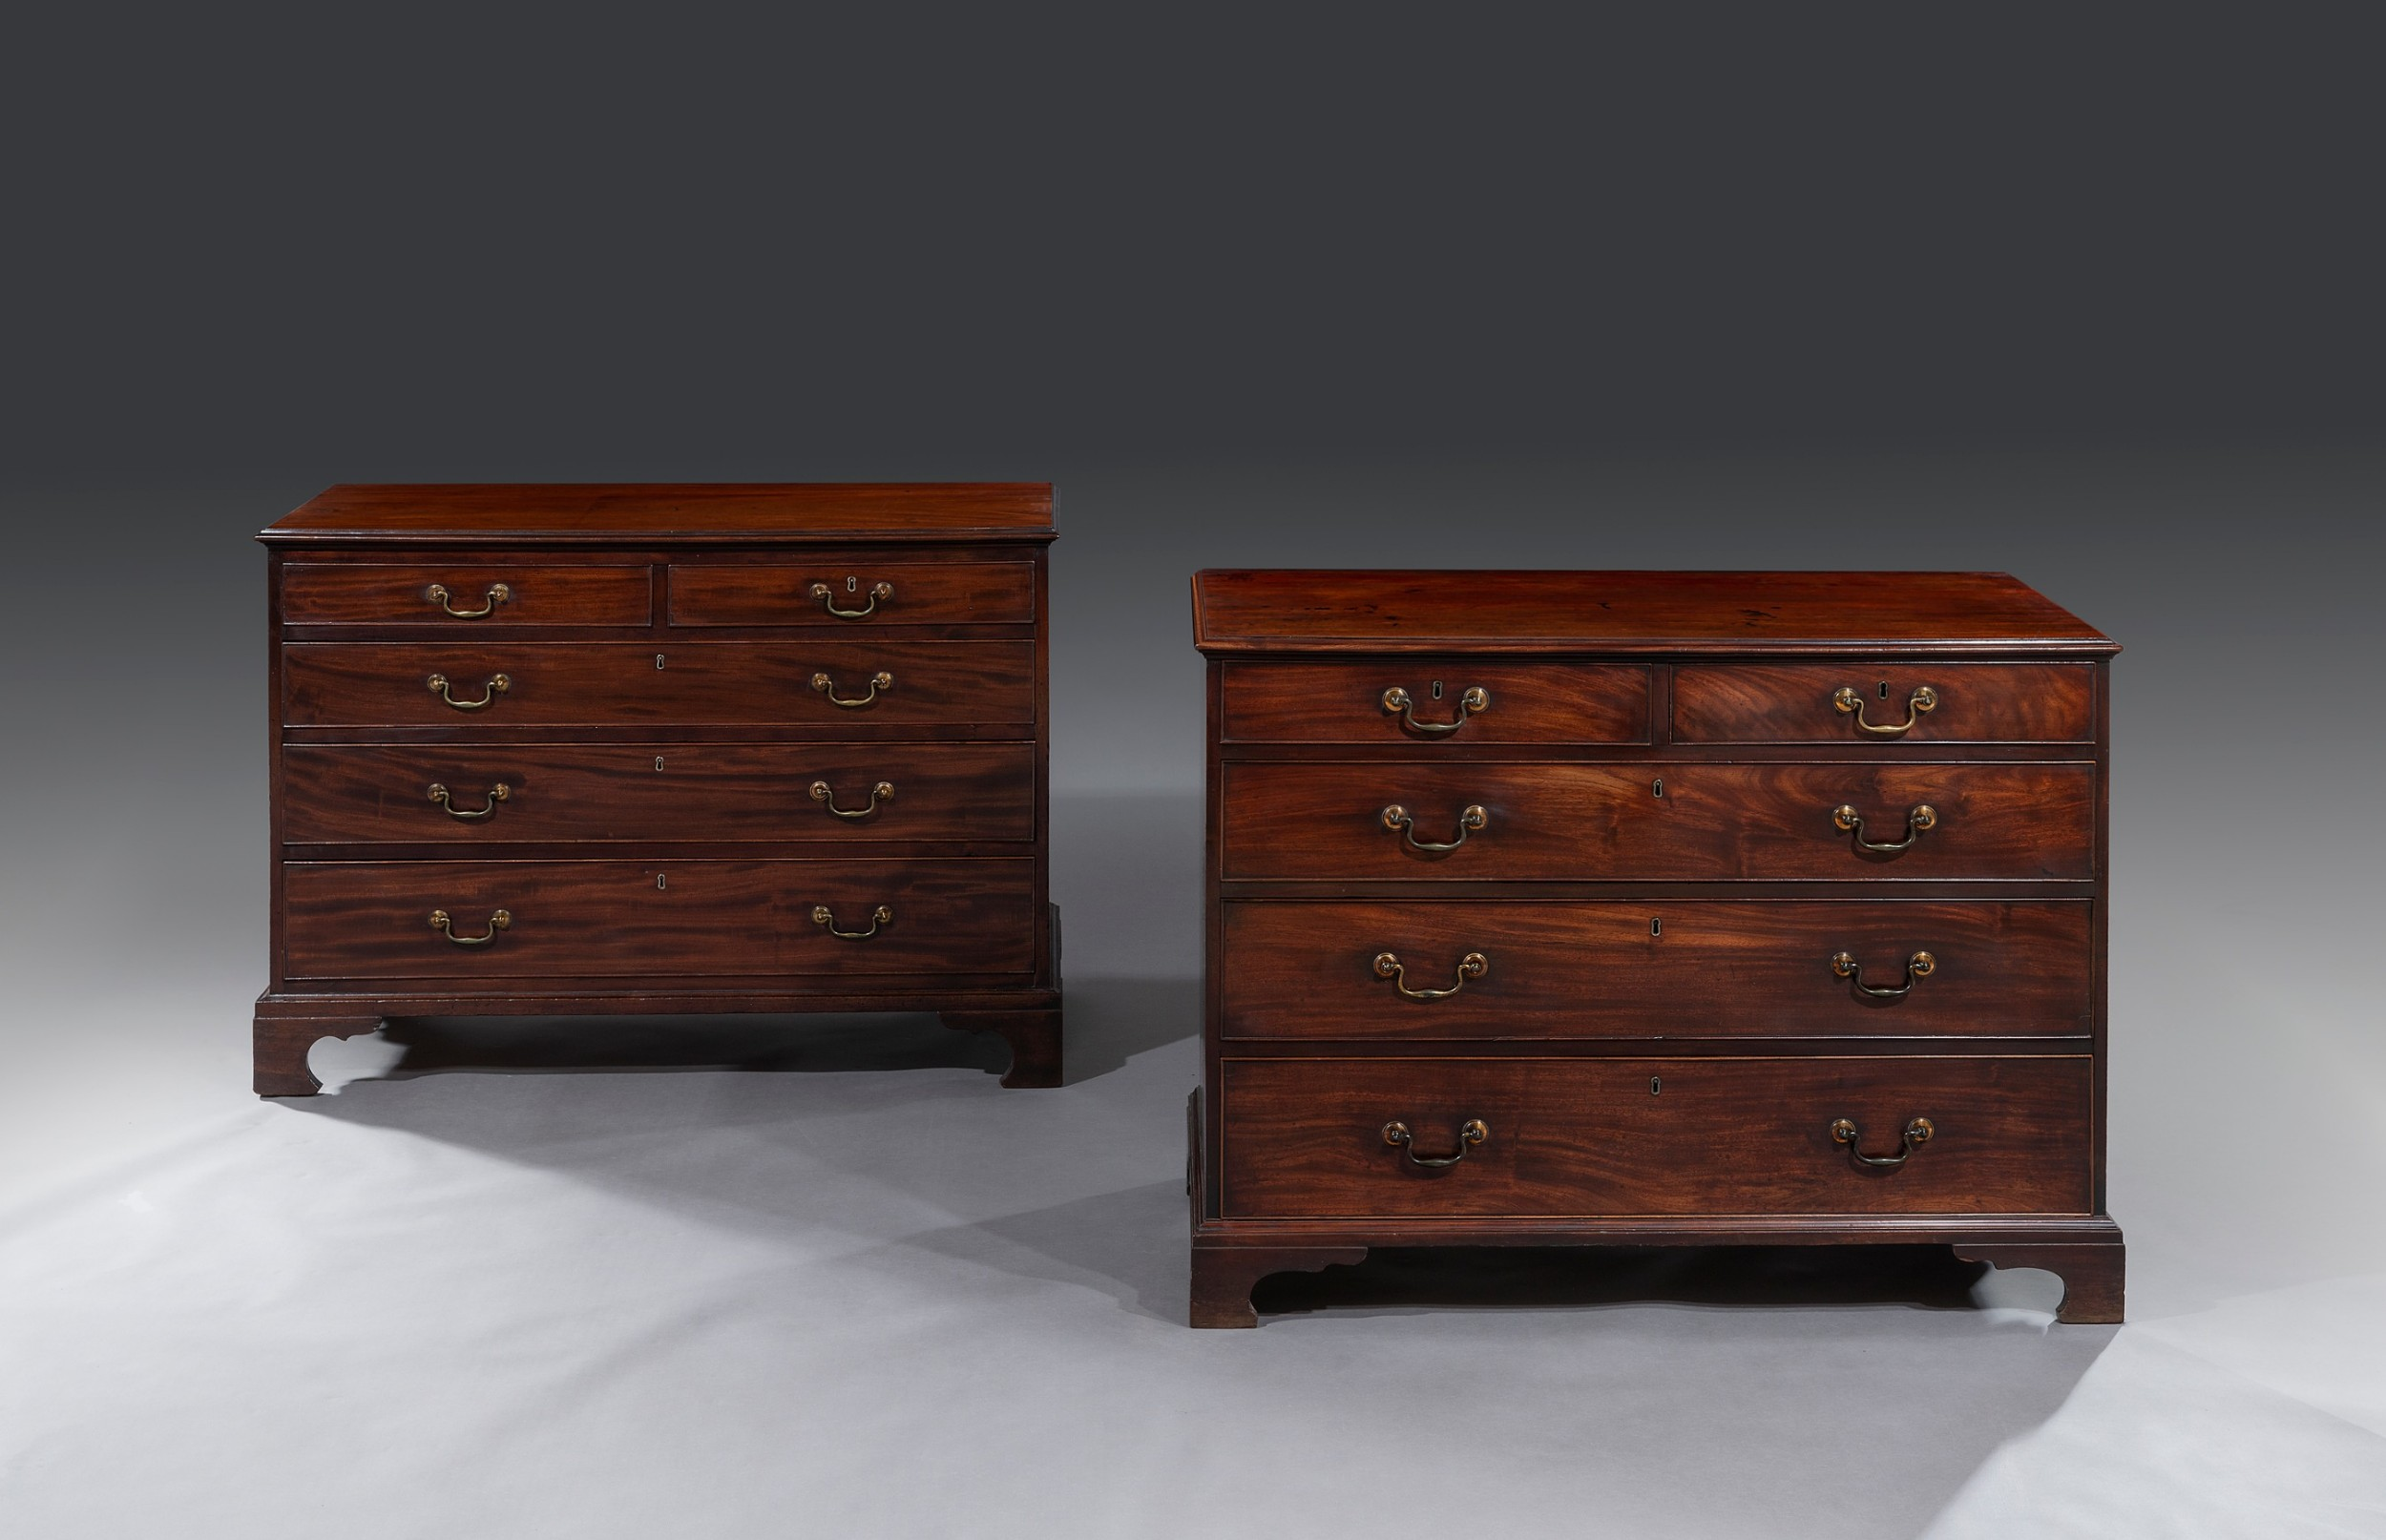 pair of 18th century commodes